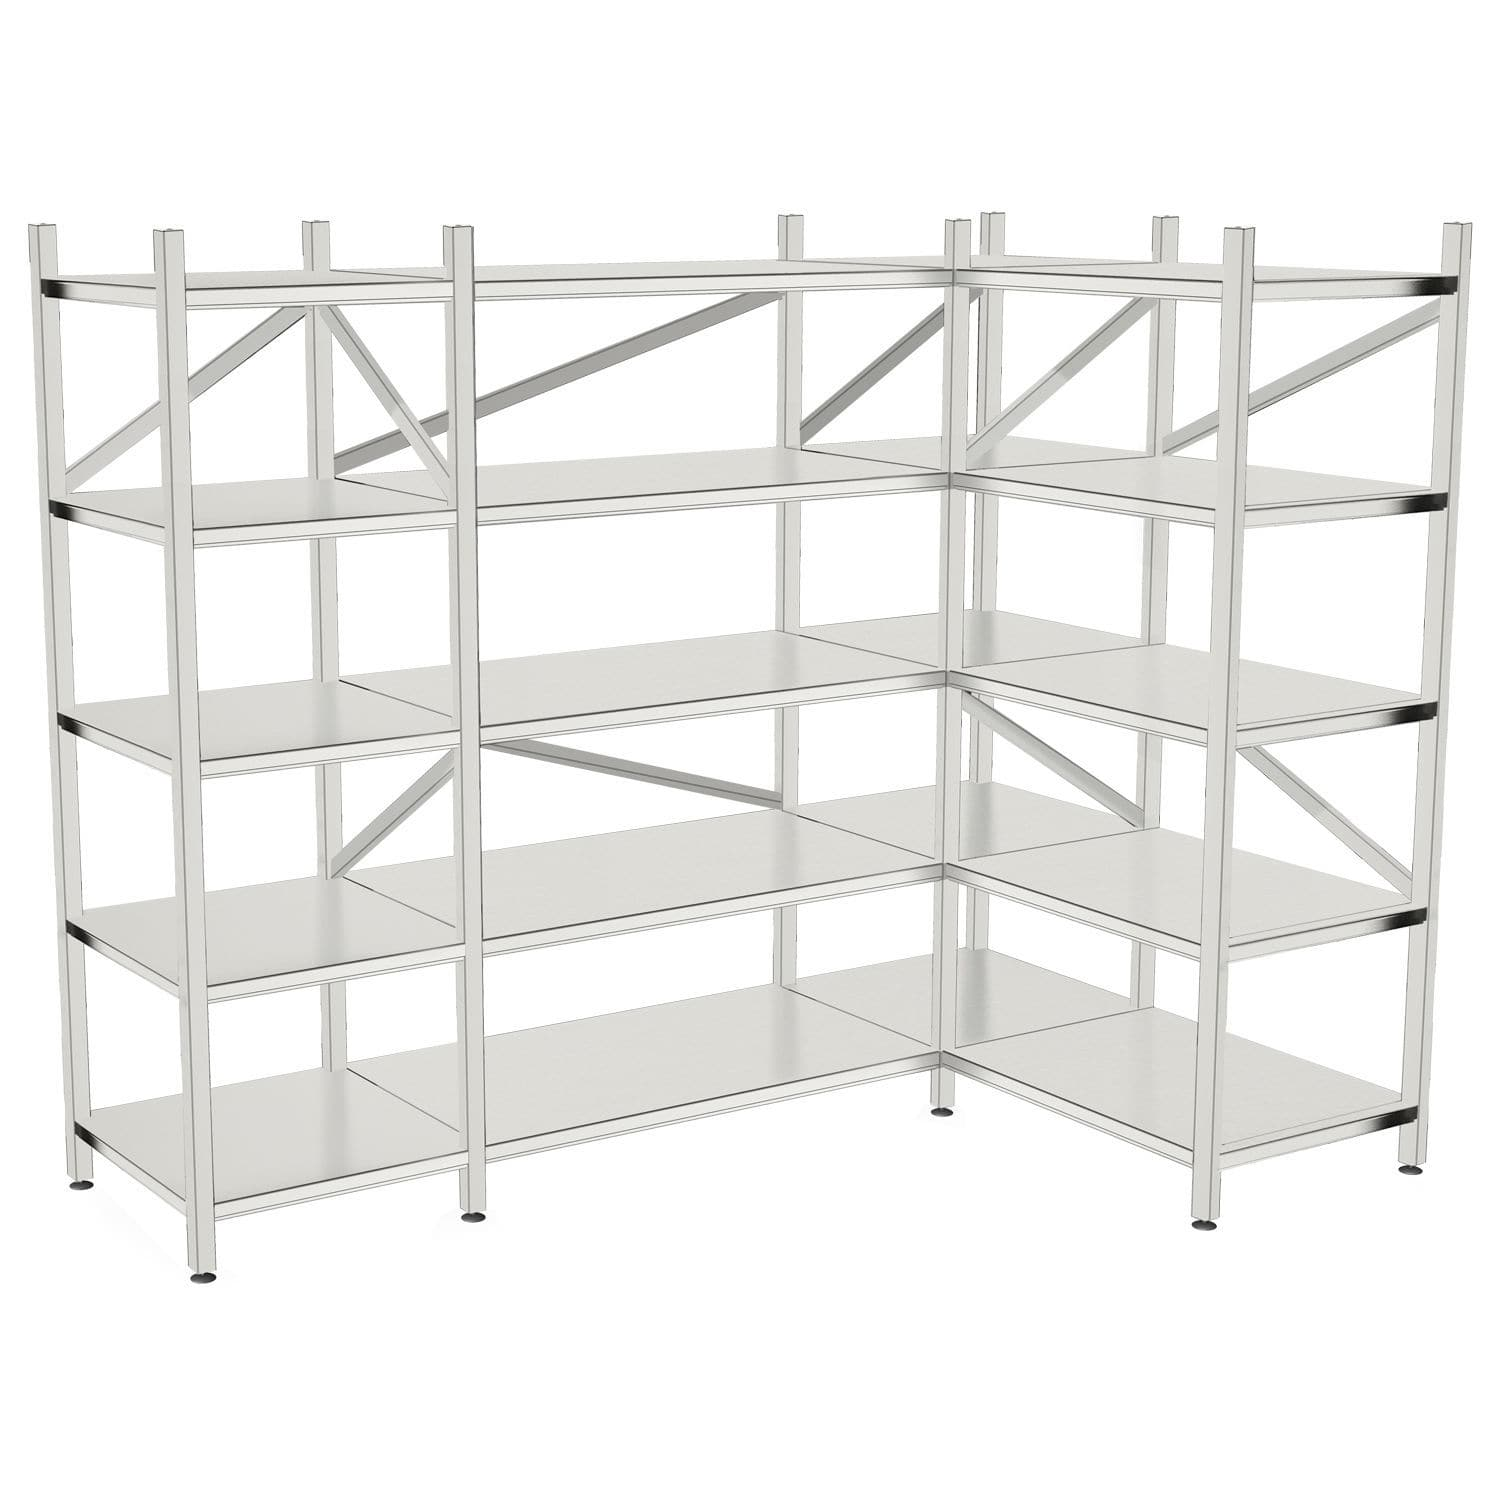 Modular Shelving Unit Mobile Wall Mounted Stainless